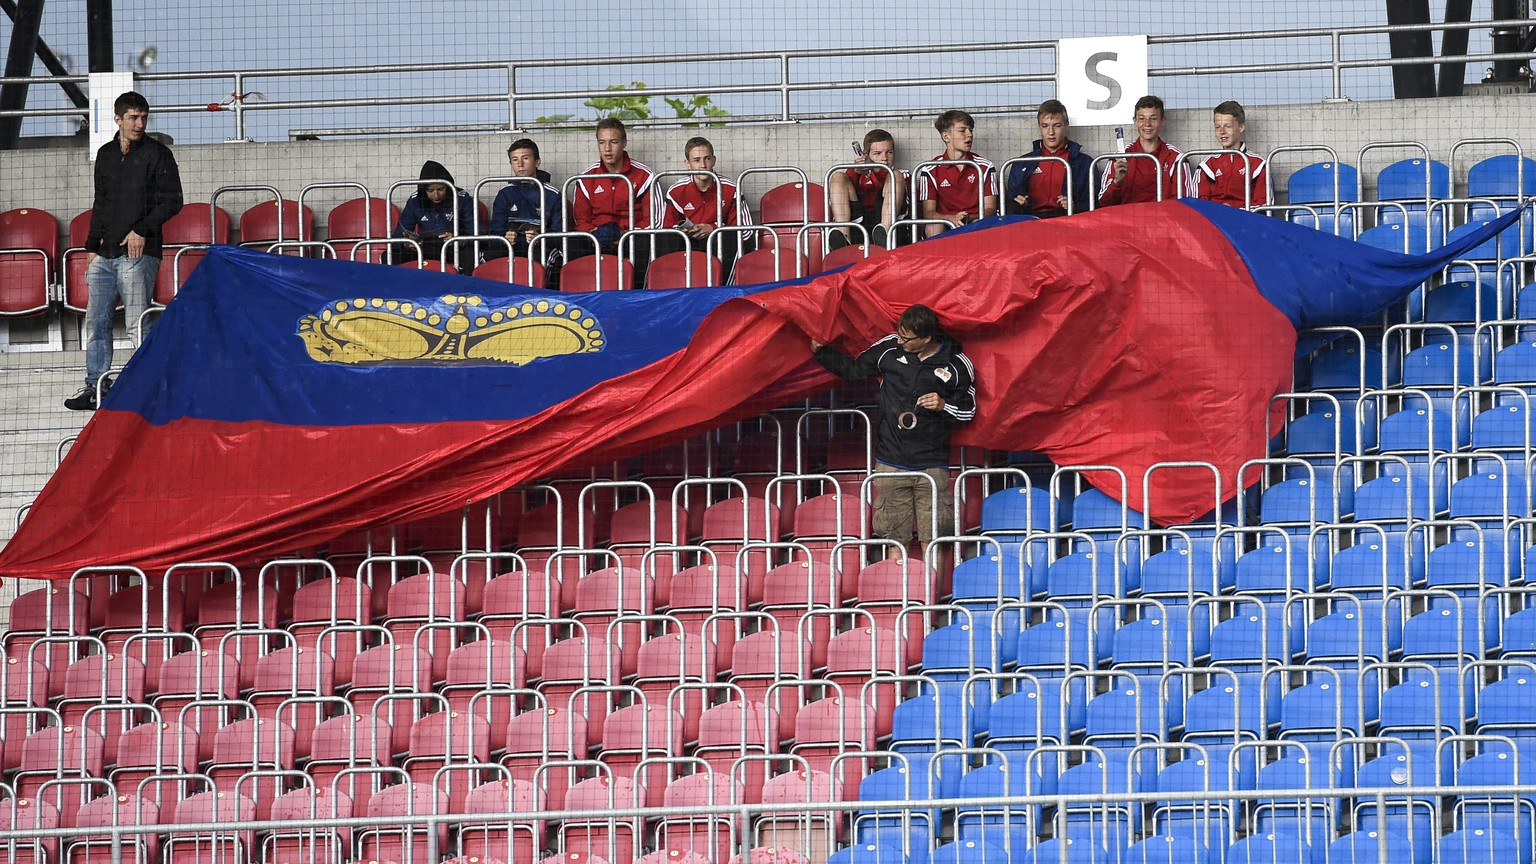 Fans of Liechtenstein unroll a flag during an UEFA Euro 2016 Qualifying group G soccer match between Liechtenstein and Moldova, on Sunday, June 14, 2015, in the Rheinpark stadium in Vaduz, Liechtenstein. (KEYSTONE/Gian Ehrenzeller)